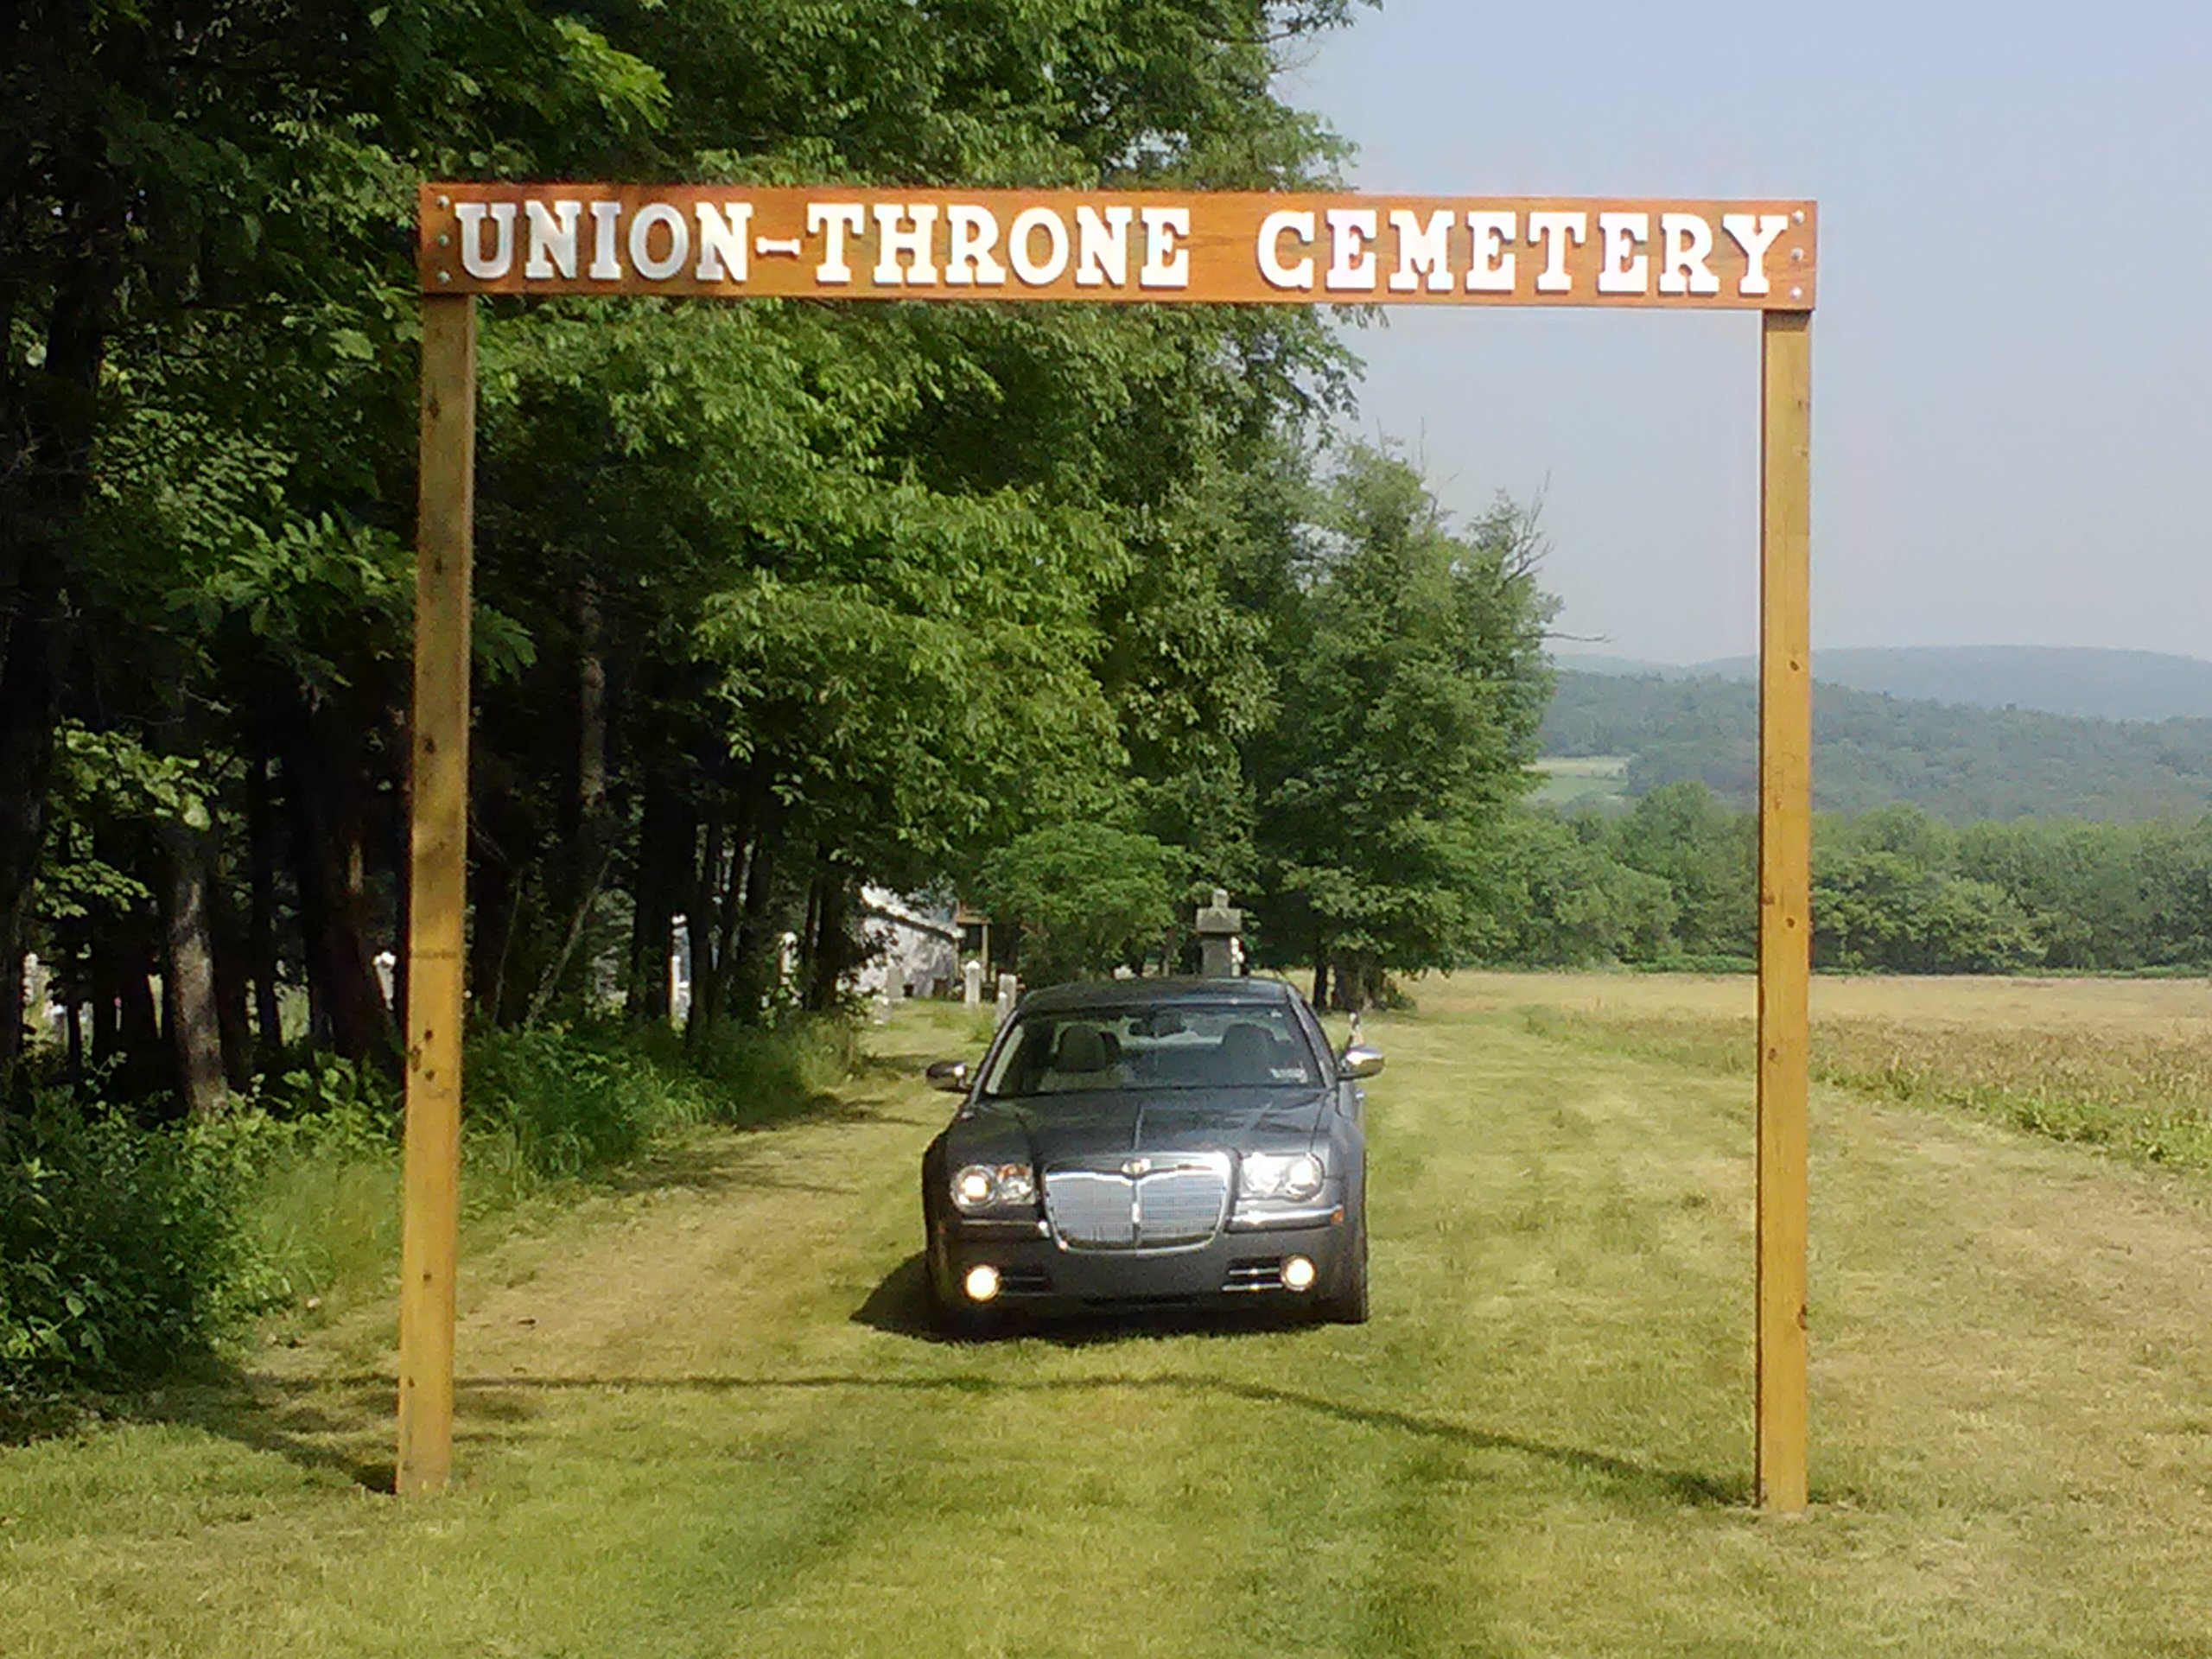 Poorman/2012-05-26_Union-Throne_Cemetery_McElhattan_Pa.jpg